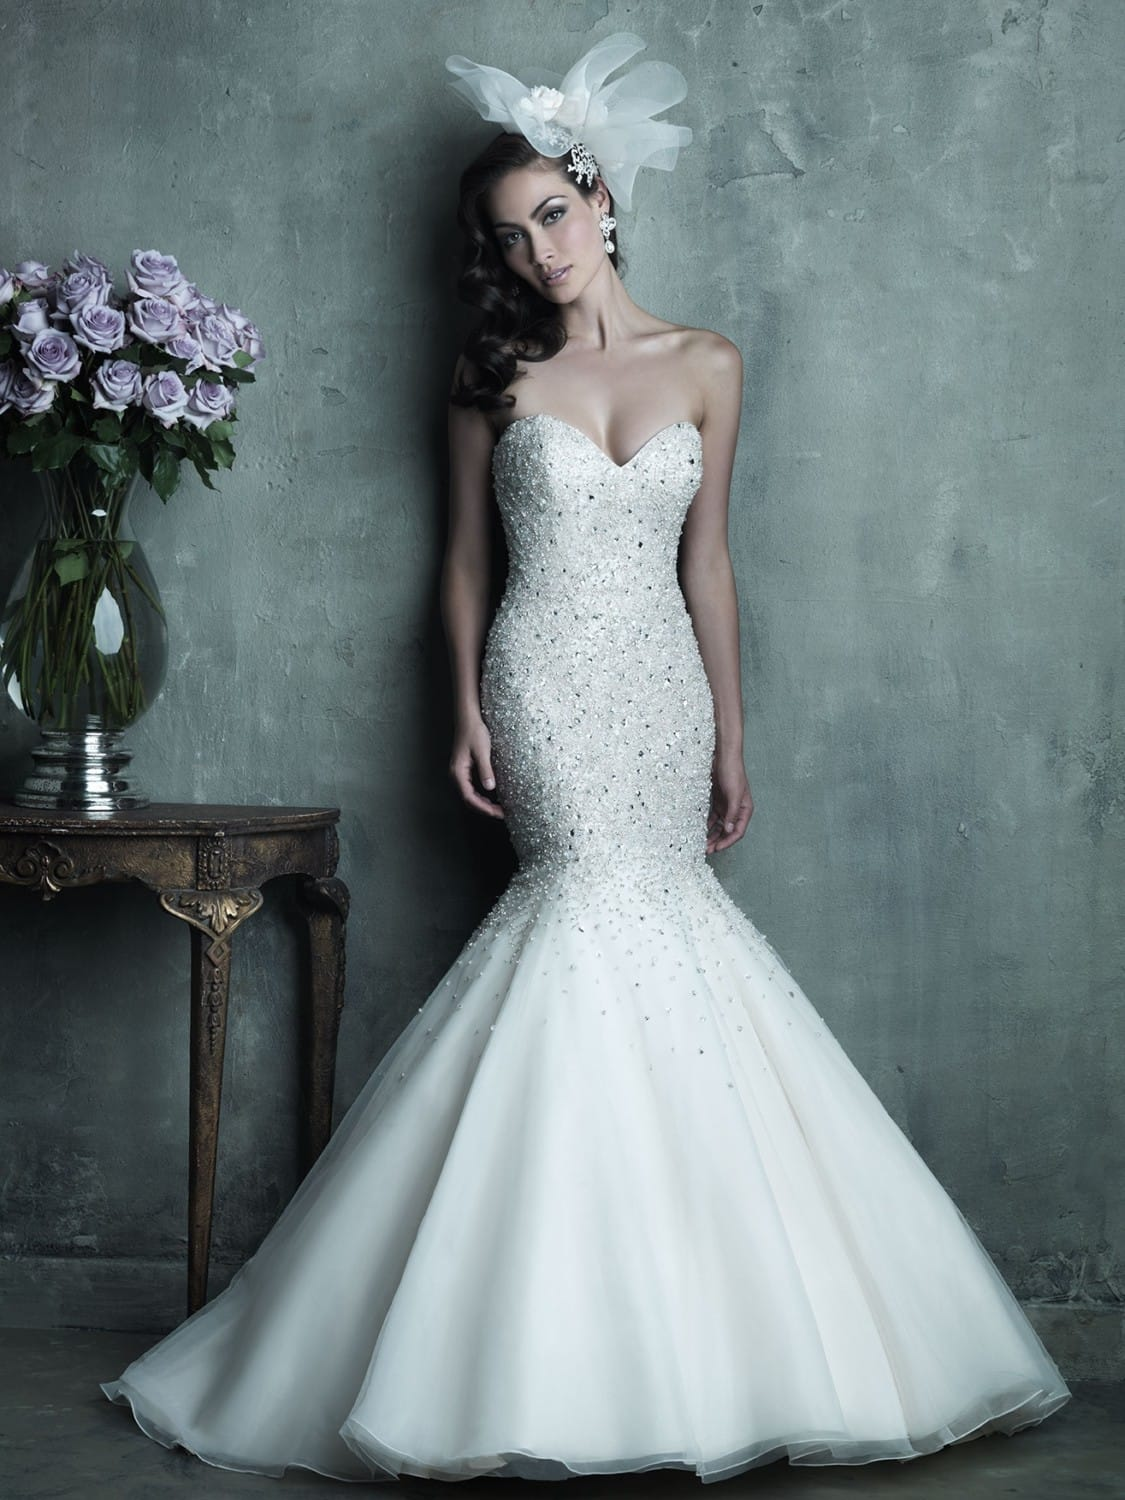 Allure Couture C286 Mermaid style wedding dress